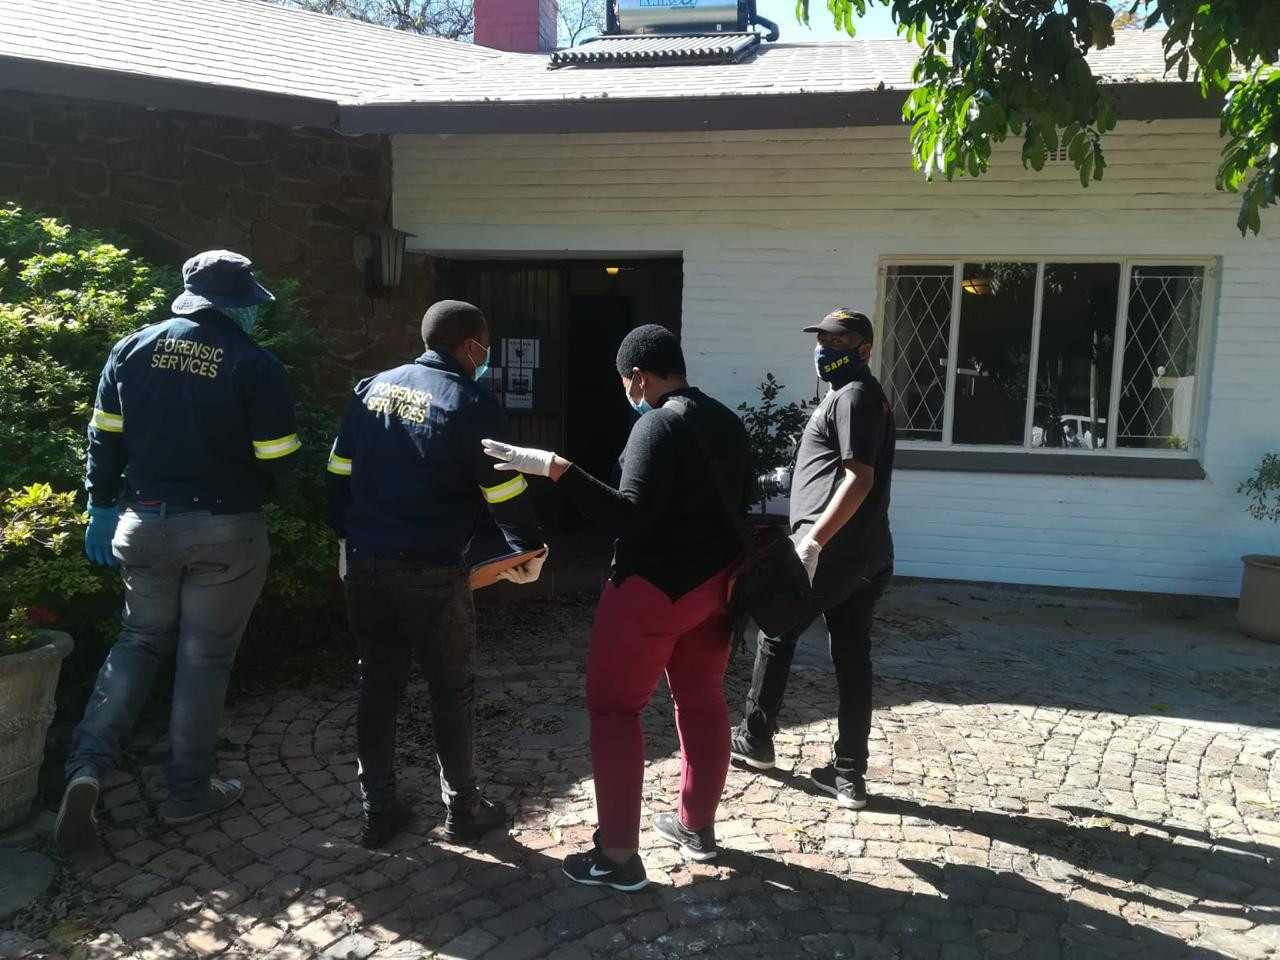 Human trafficking ring: South African police rescue 10